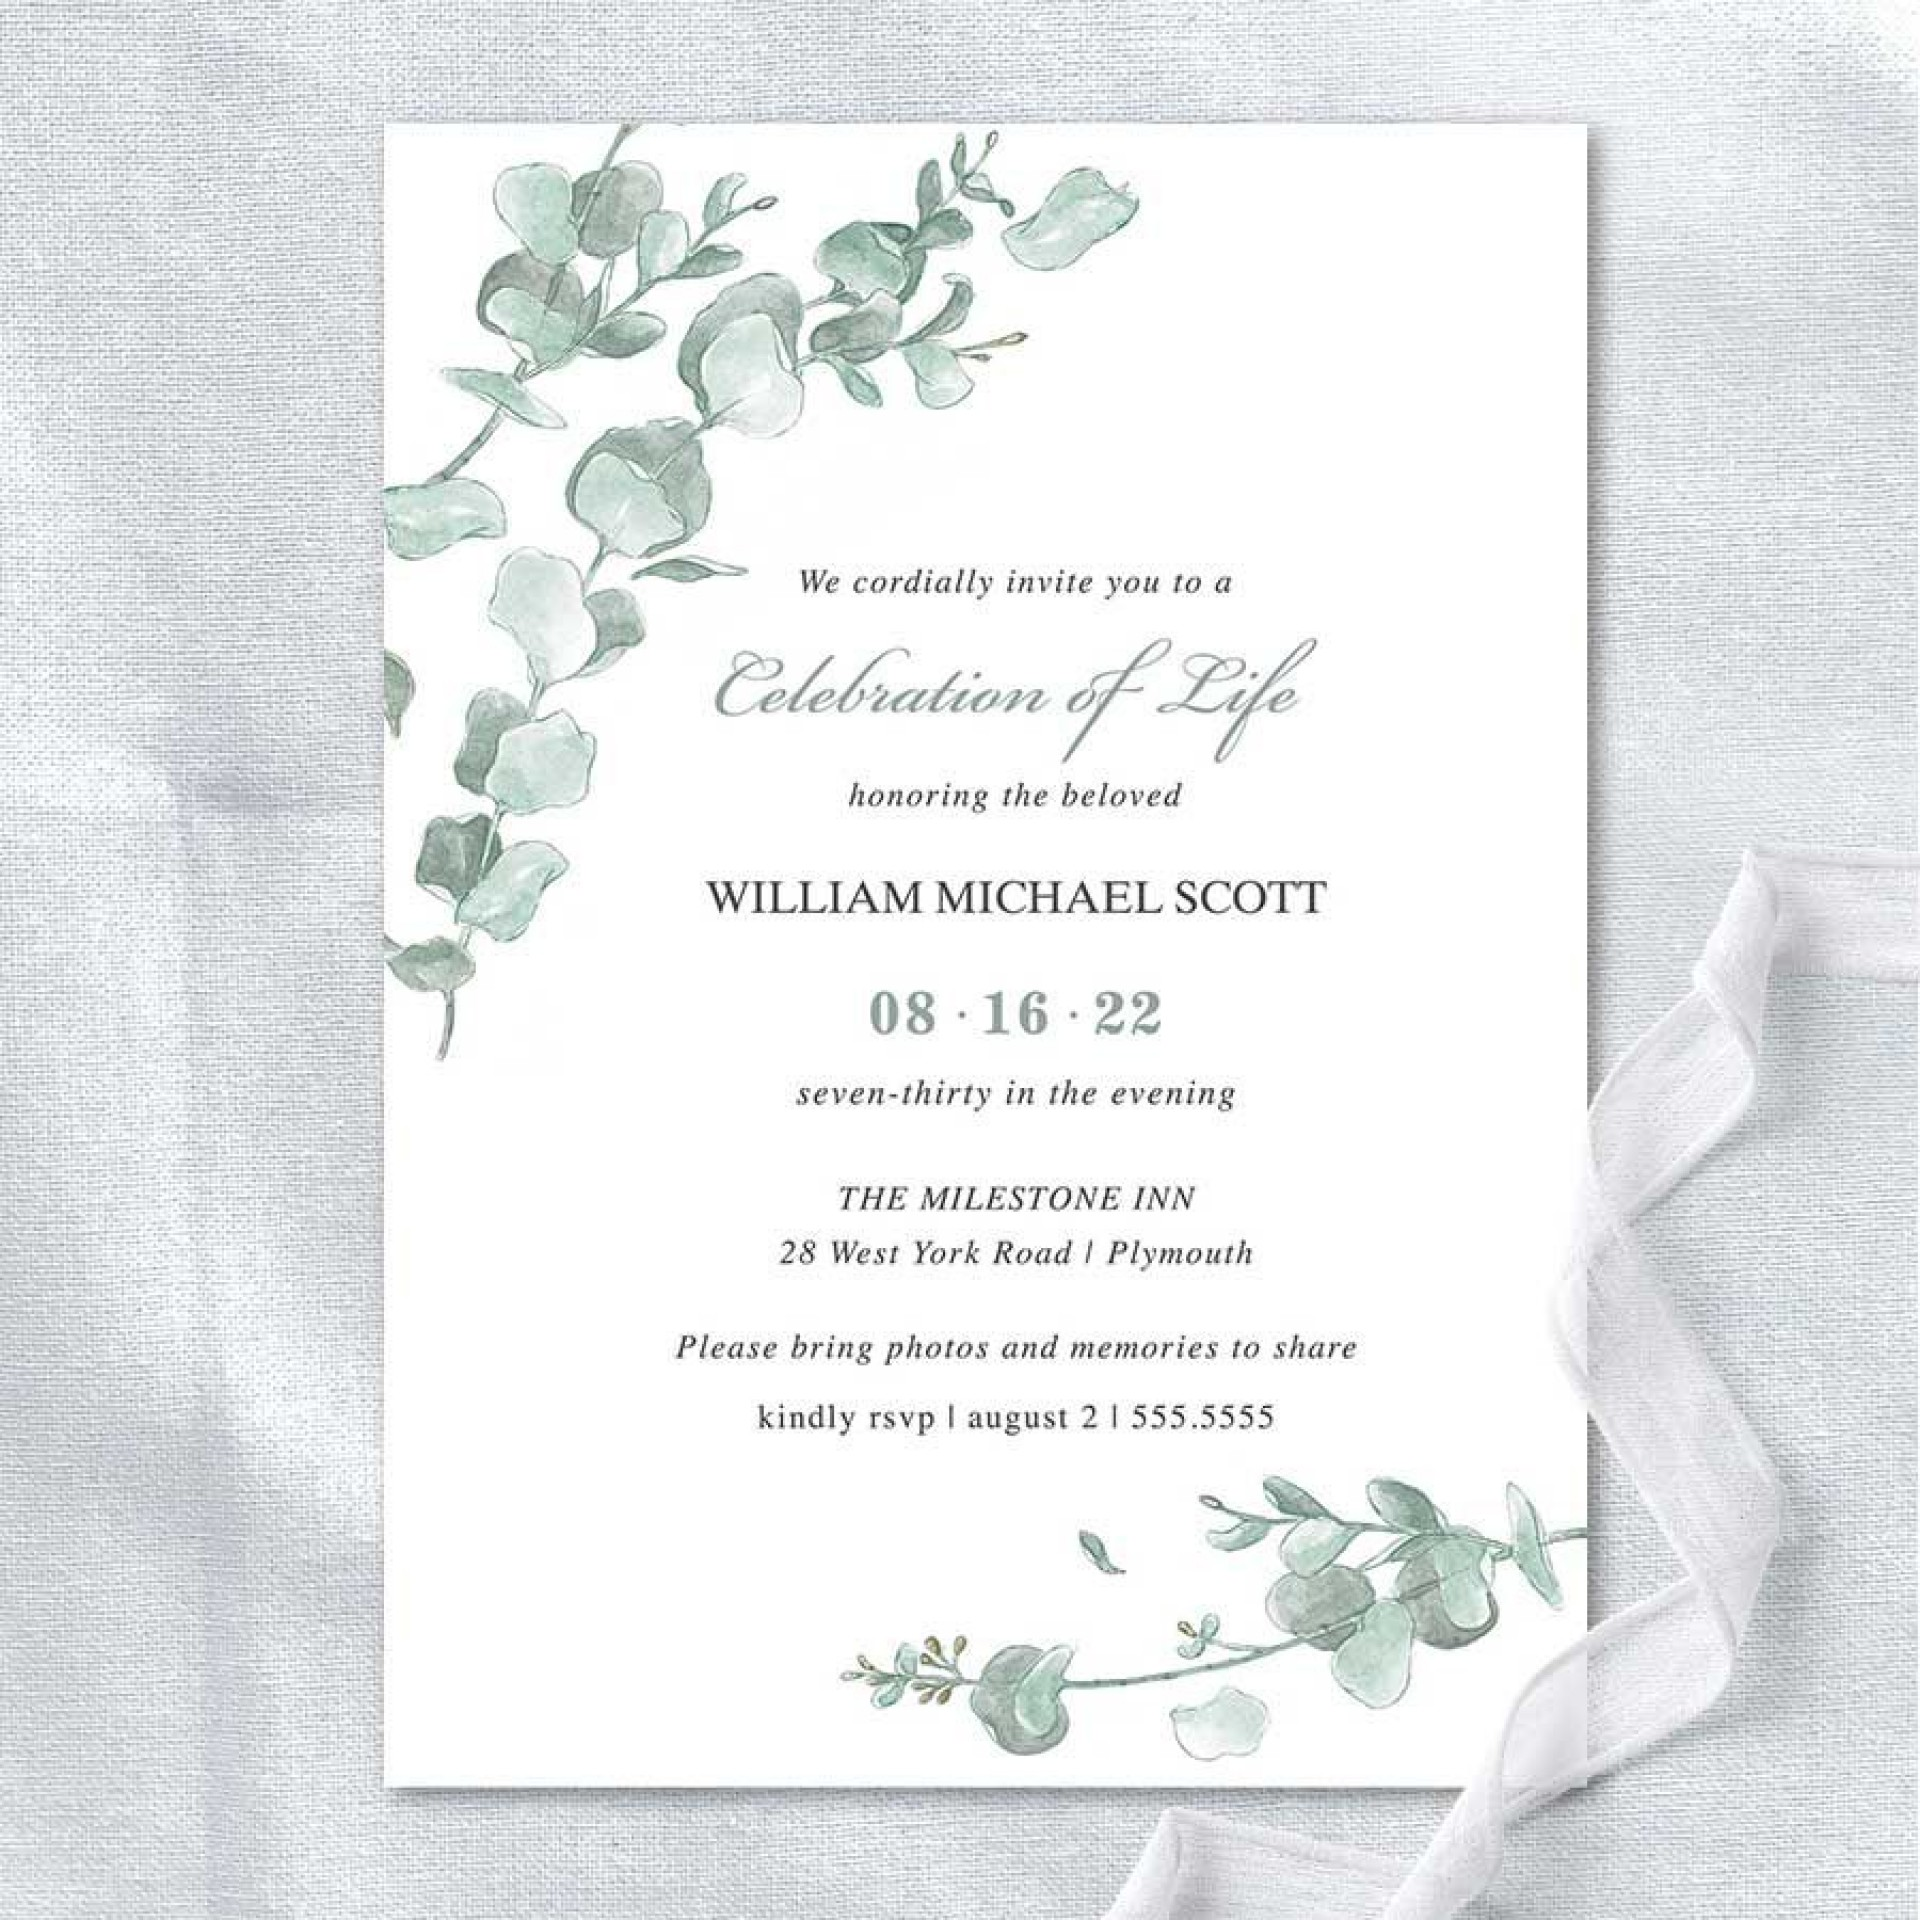 011 Beautiful Funeral Invitation Template Free Sample  Memorial Service Card Reception1920